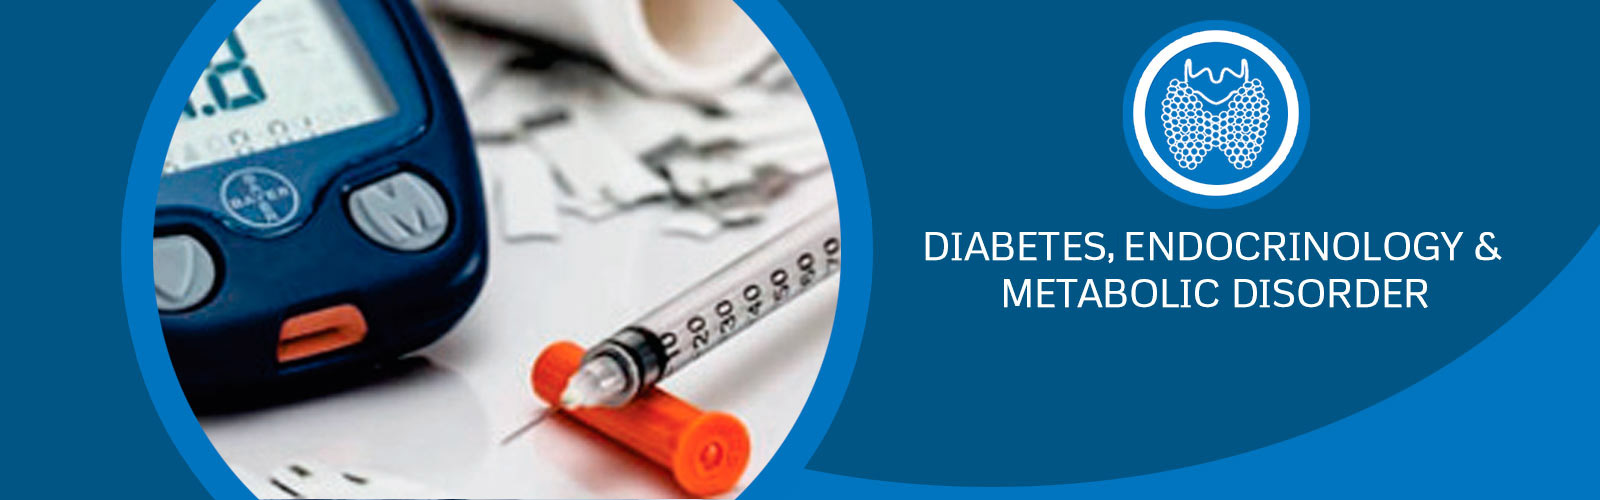 Diabetes Endocrinology & Metabolic Disorder